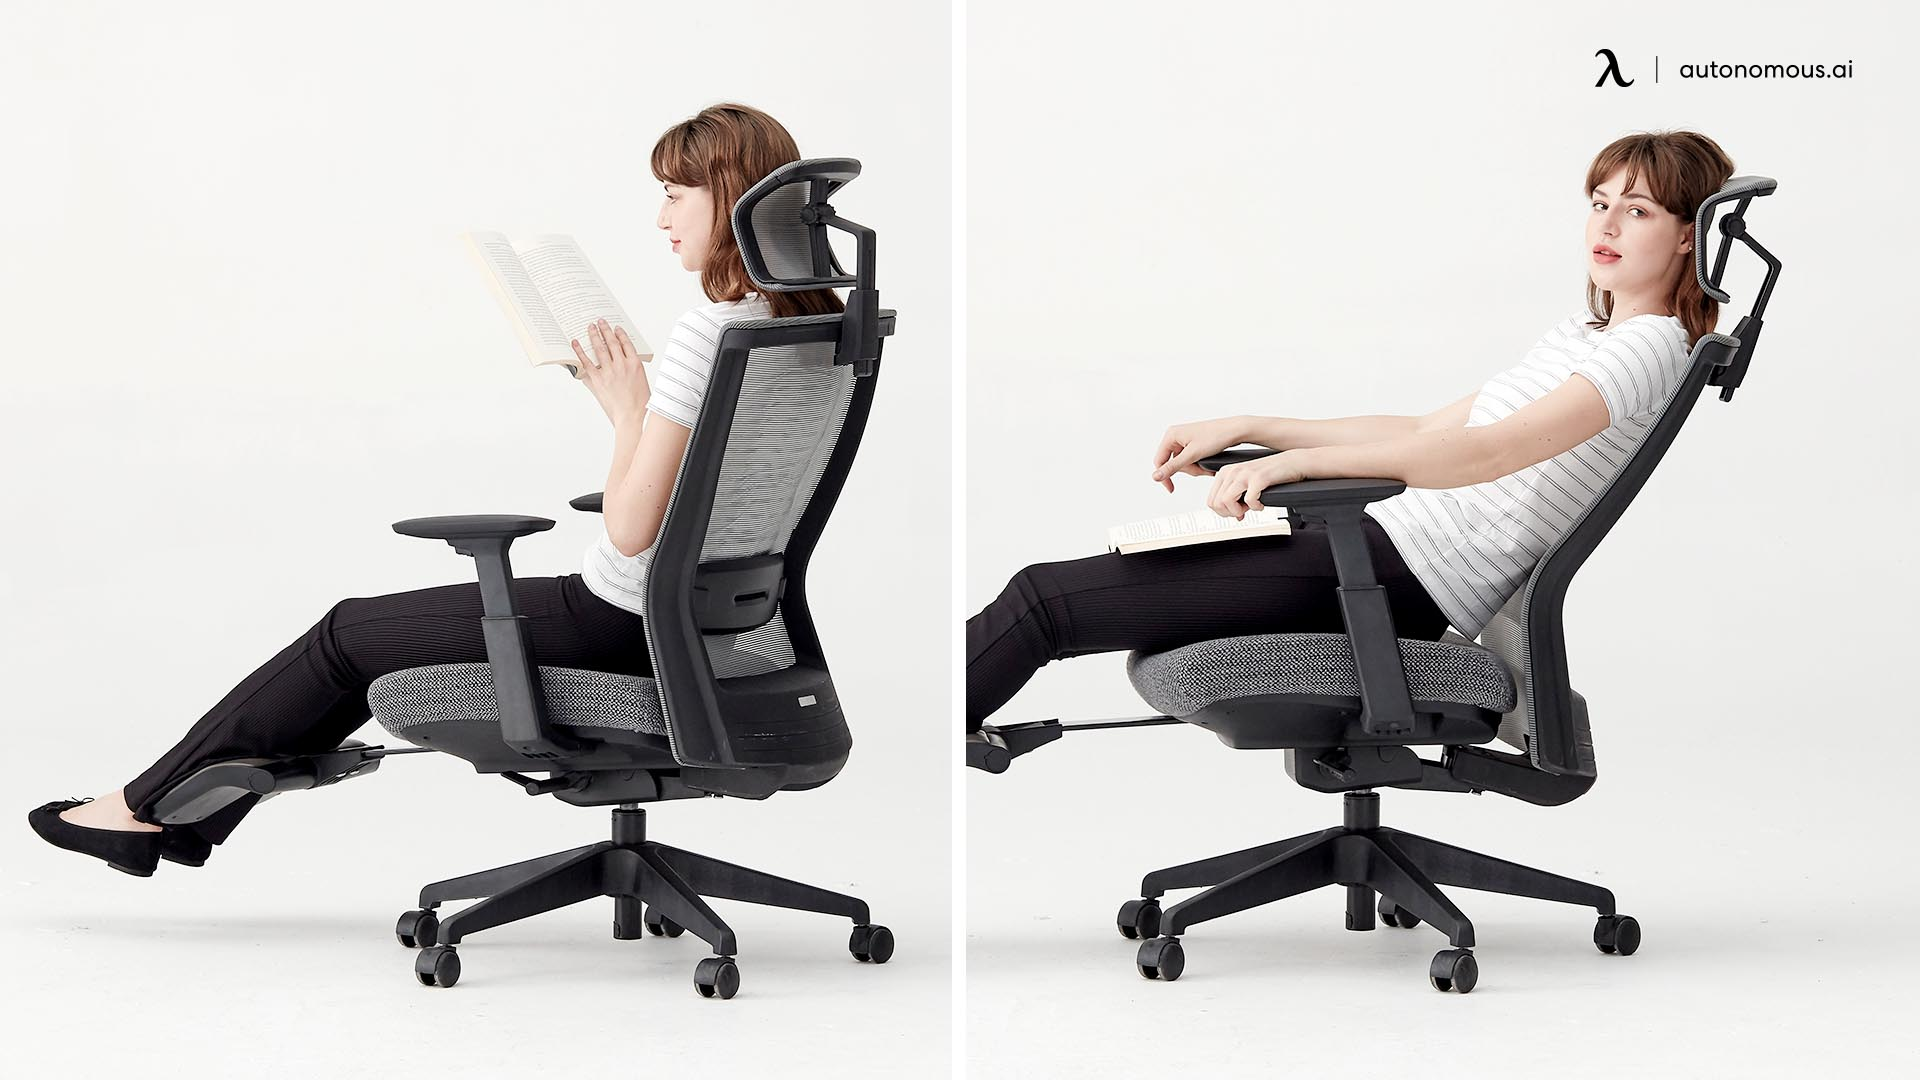 Ergonomic Chairs Can Help in Improving Your Back Pain